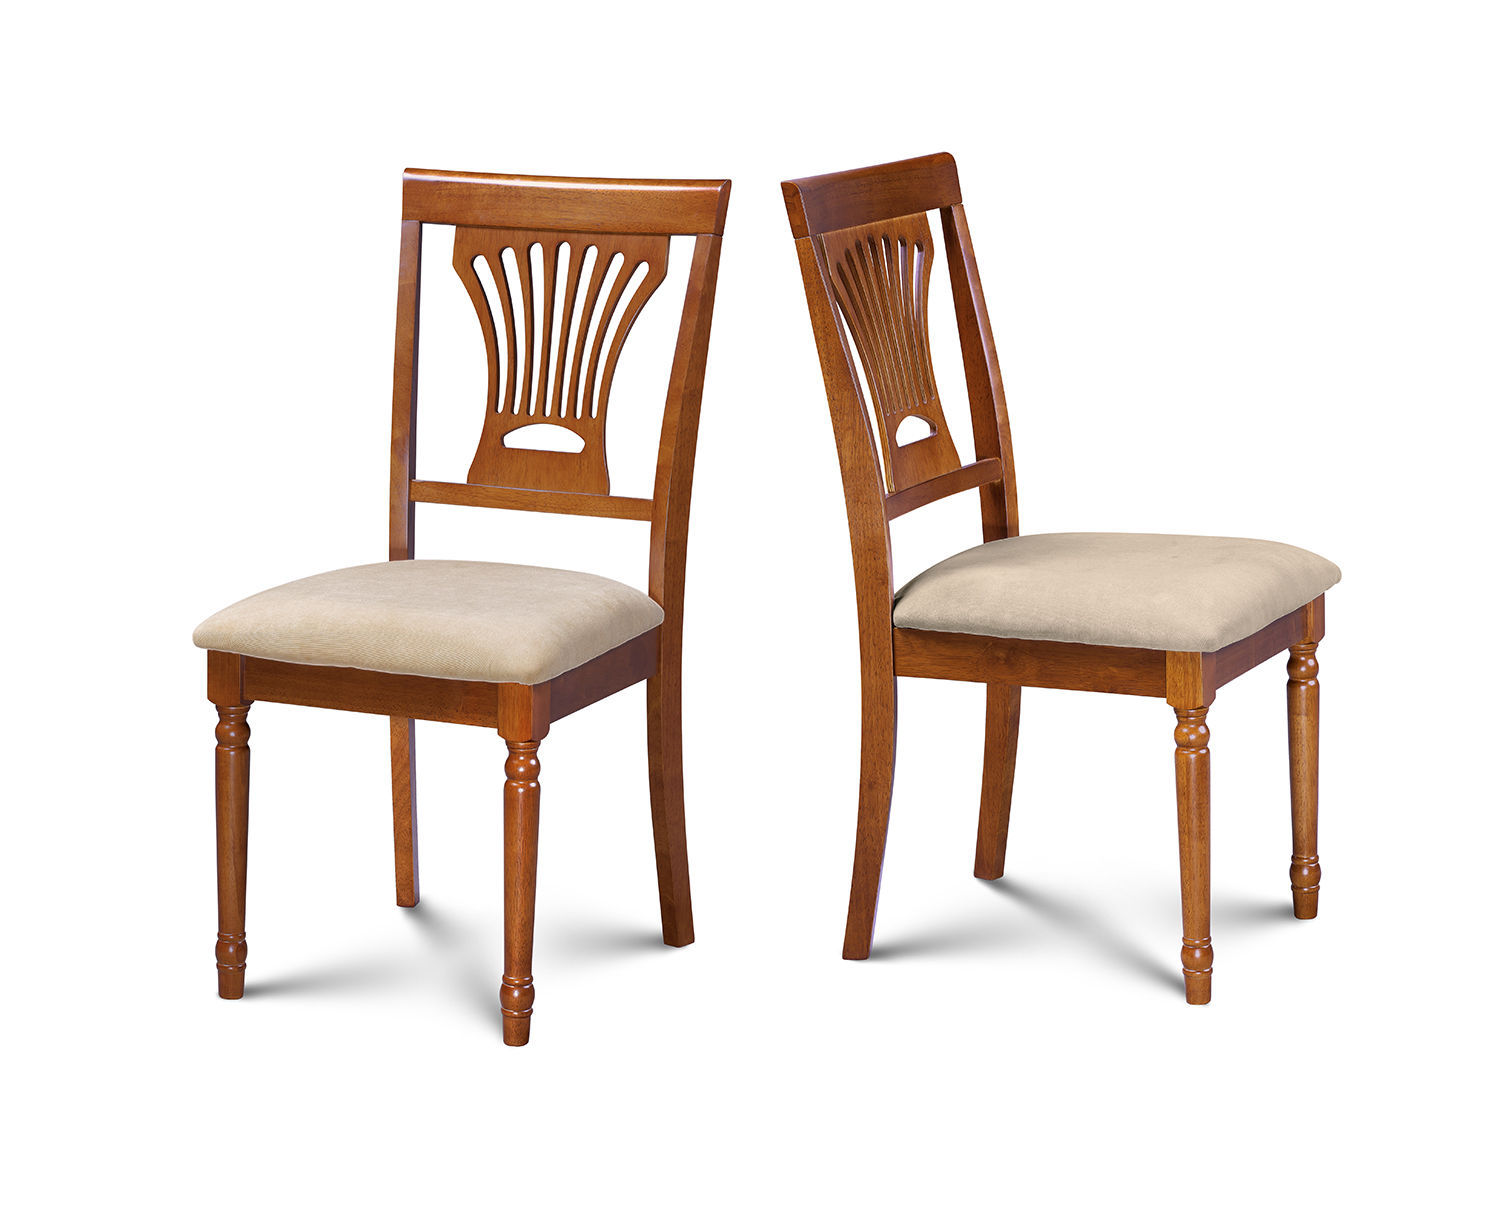 SETOF 4 DINING KITCHEN SIDE CHAIR W/ SOFT-PADDED SEATS IN SADDLE BROWN